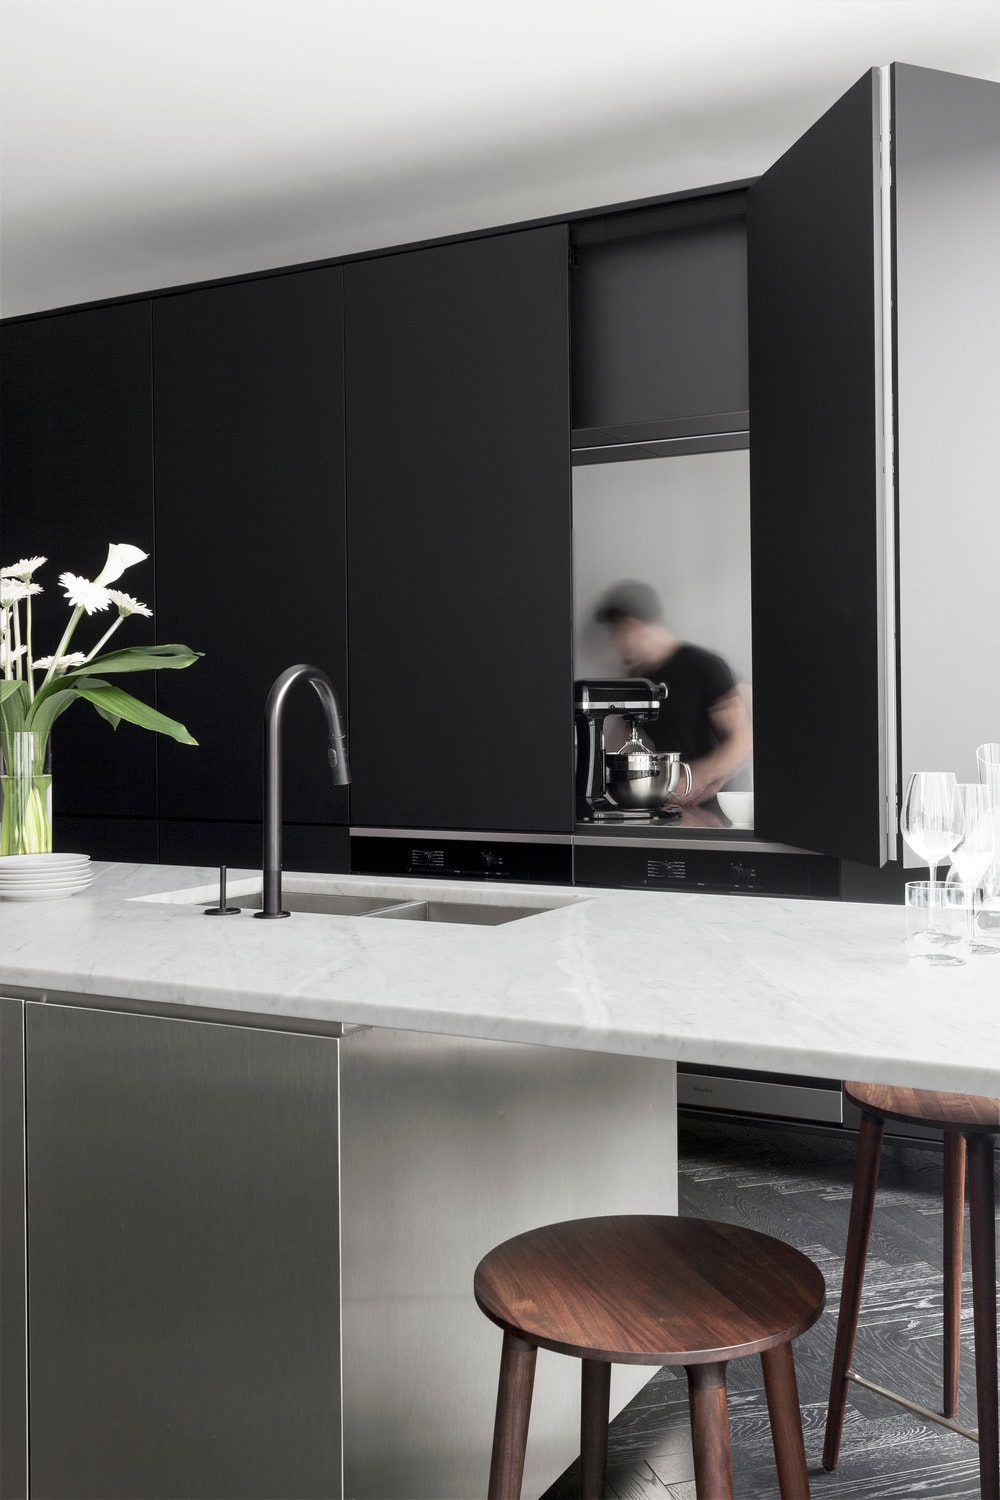 These black panels of the modern structure open up to reveal the work space of the kitchen for cooking. These panels fold in itself for an ingenious space-saver design.